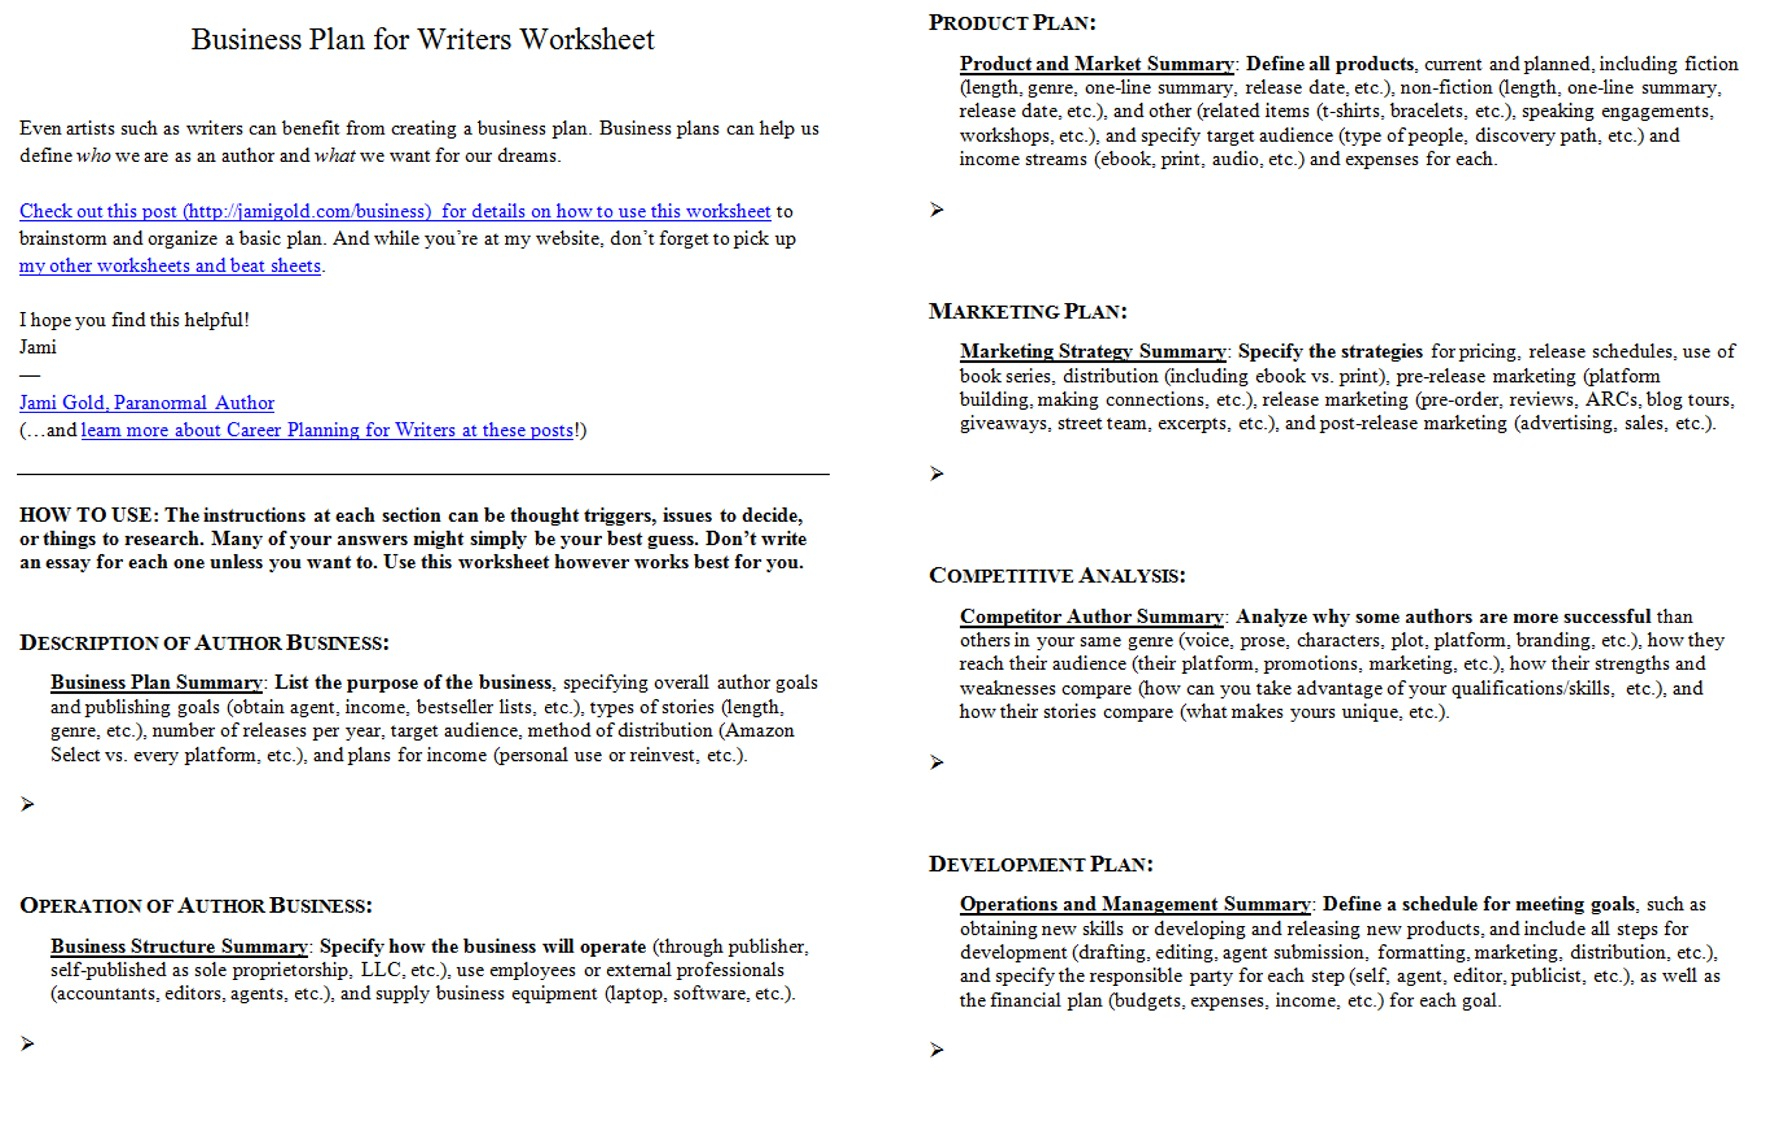 worksheet Your Vs You Re Worksheet worksheets for writers jami gold paranormal author screen shot of both pages the business plan worksheet